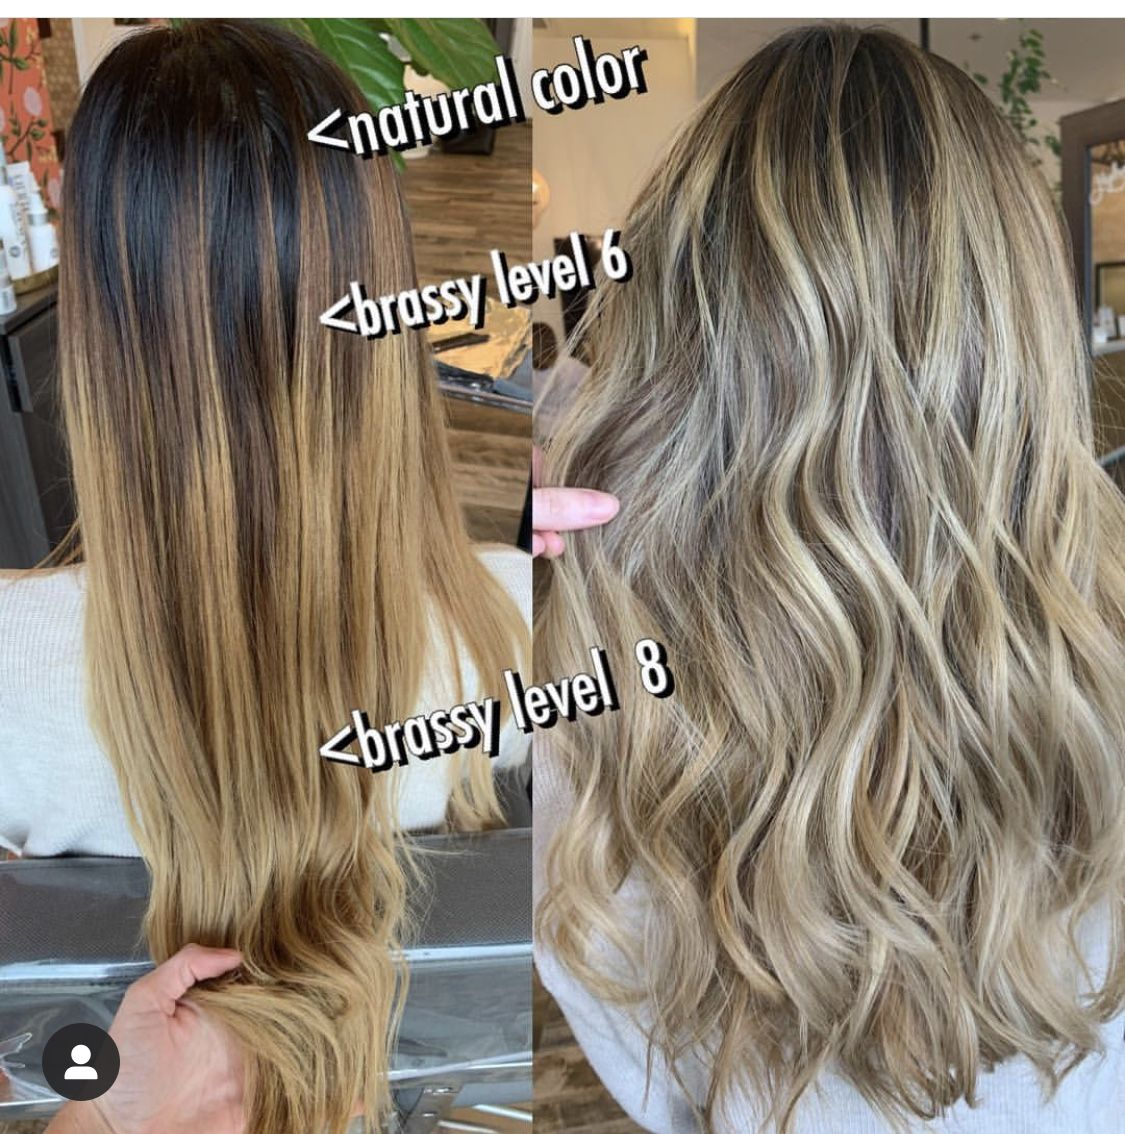 The Ultimate Answer To Why Blonde Hair Turns Yellow Or Brassy Beauty And Lifestyle Blog Ally Samouce Yellow Blonde Hair Brassy Blonde Hair Which Hair Colour